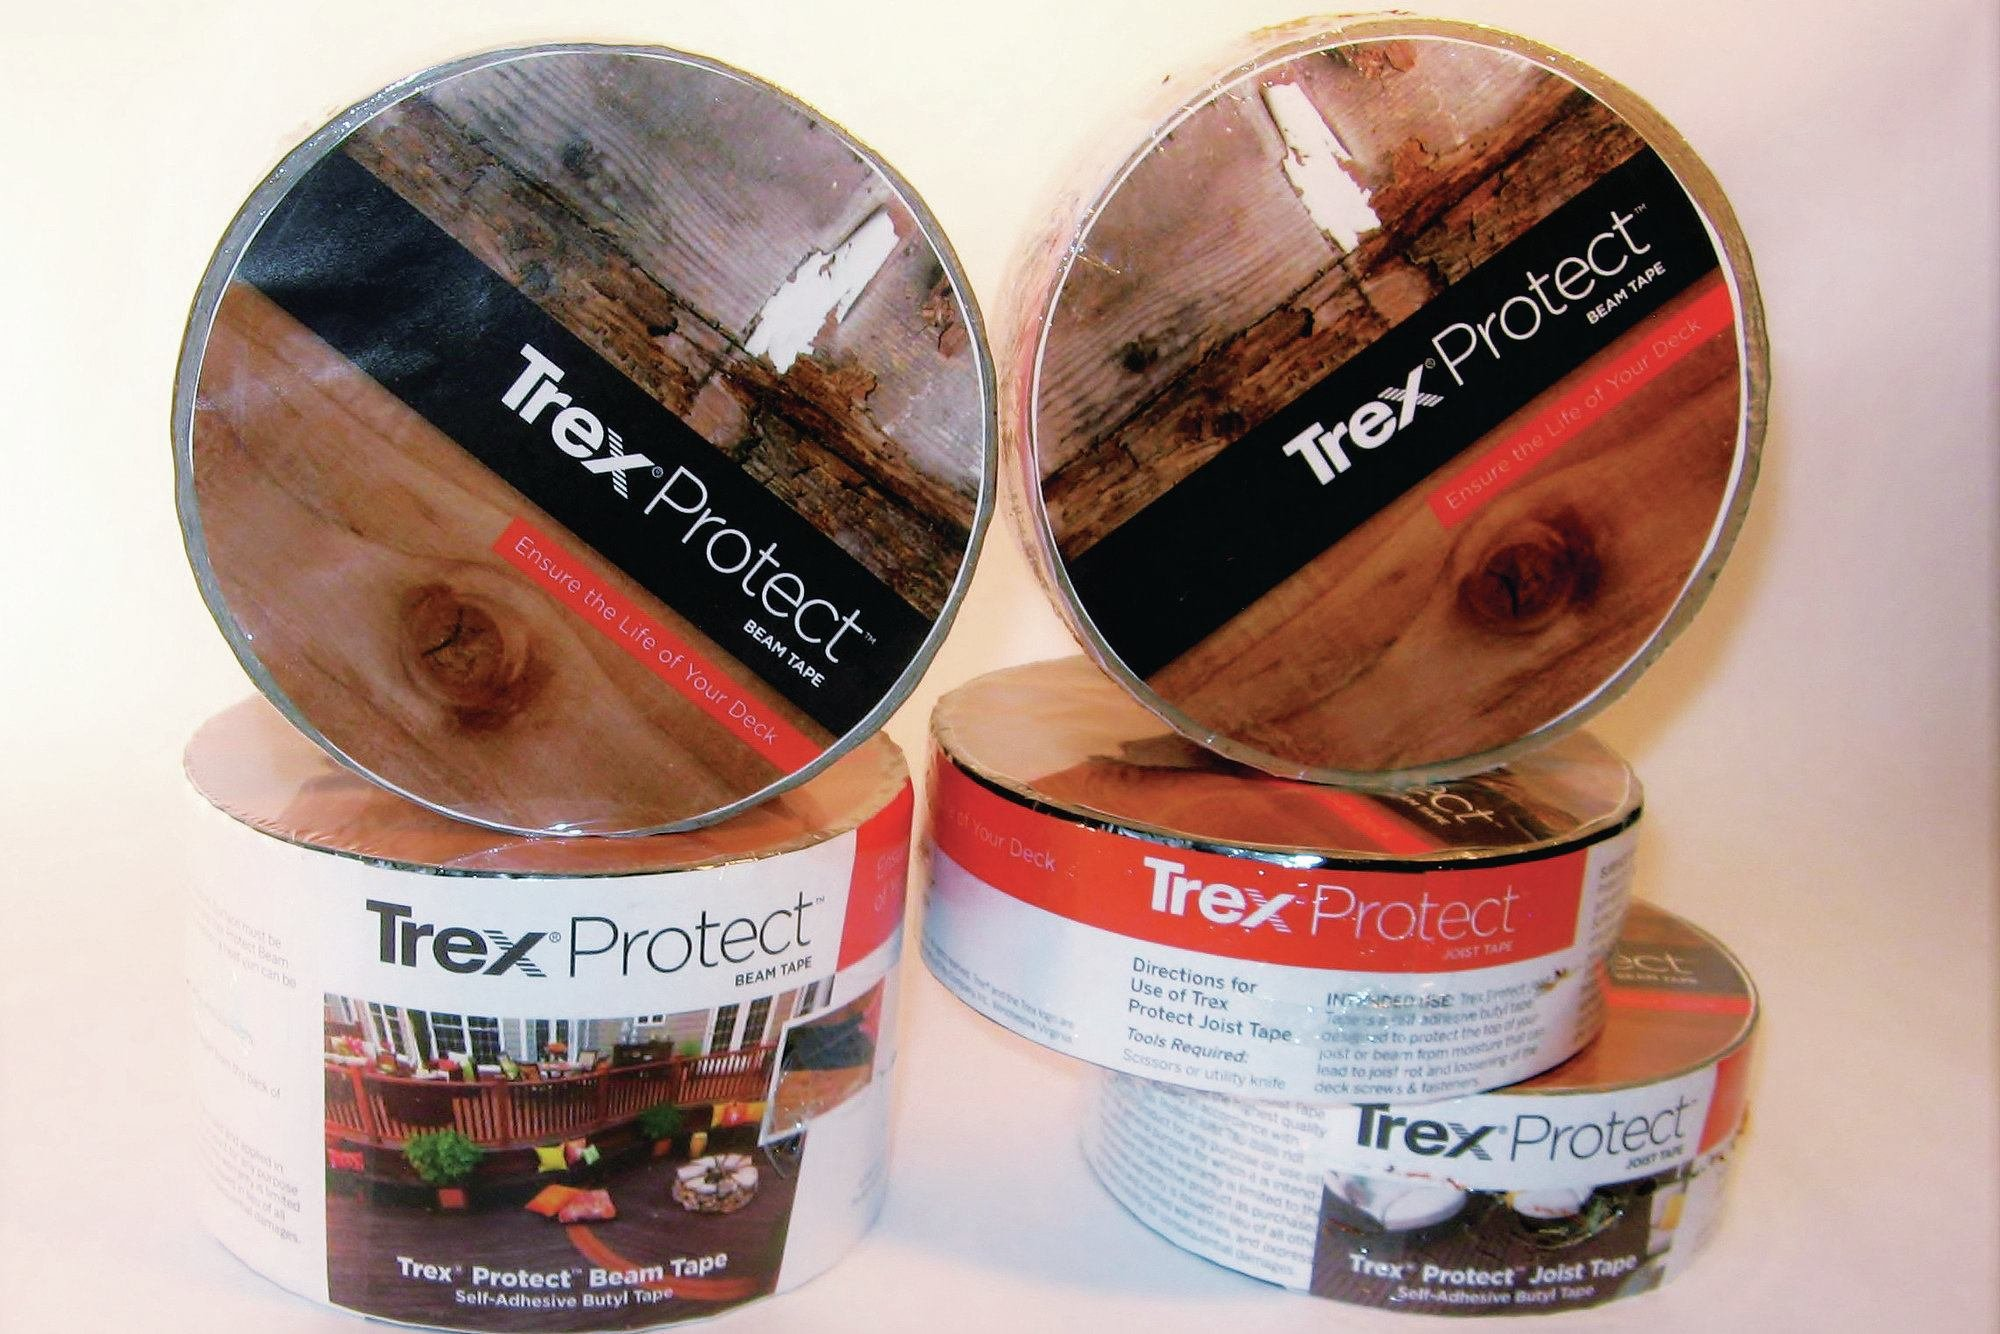 Trex Protect Beam Butyl Tape 3-1/8'' x 50' by TREX